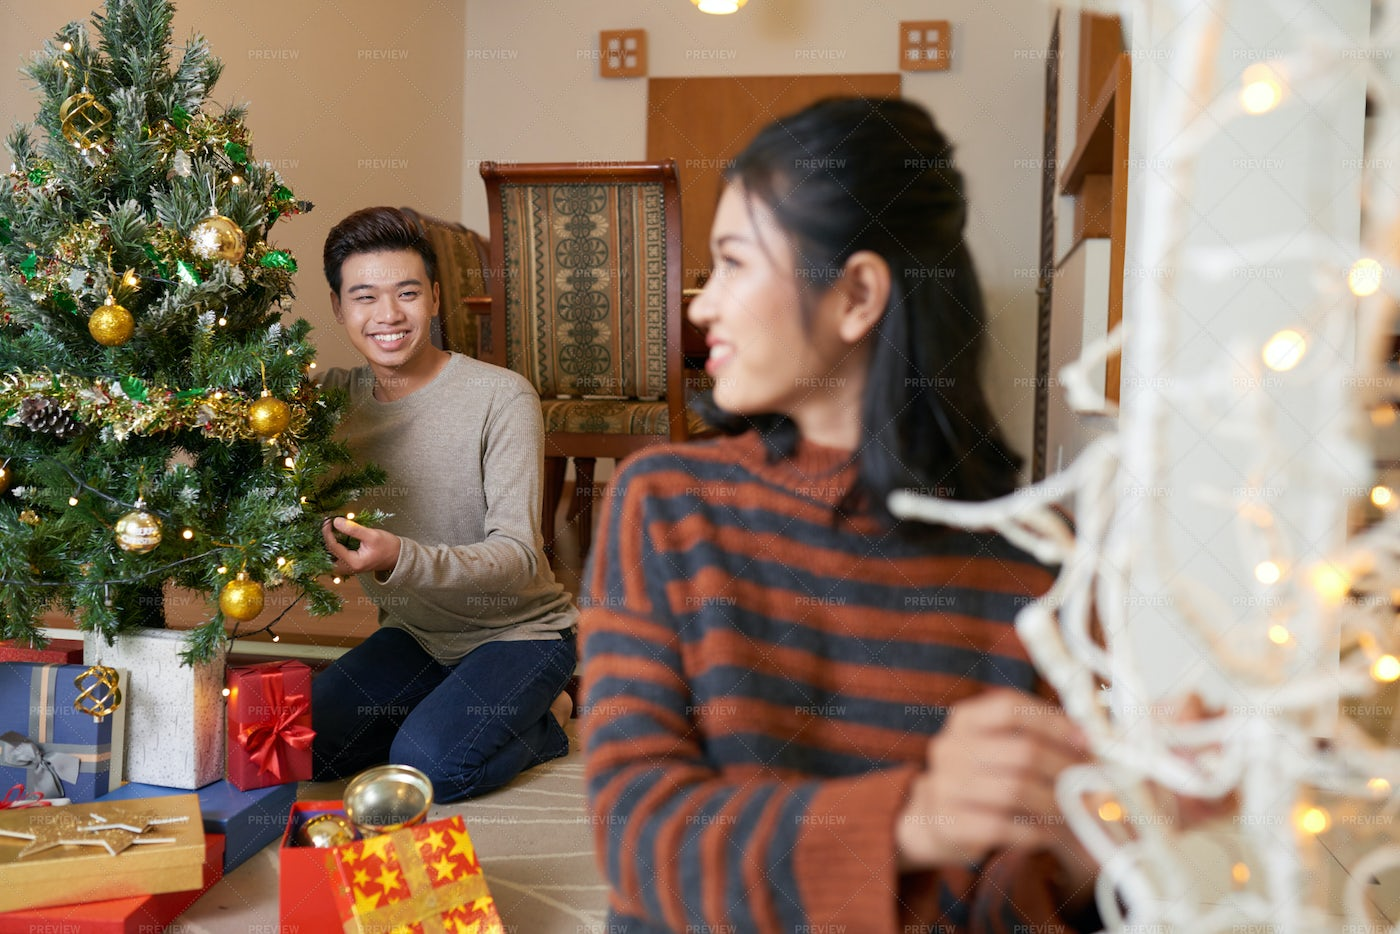 Decorating Tree With Lights: Stock Photos